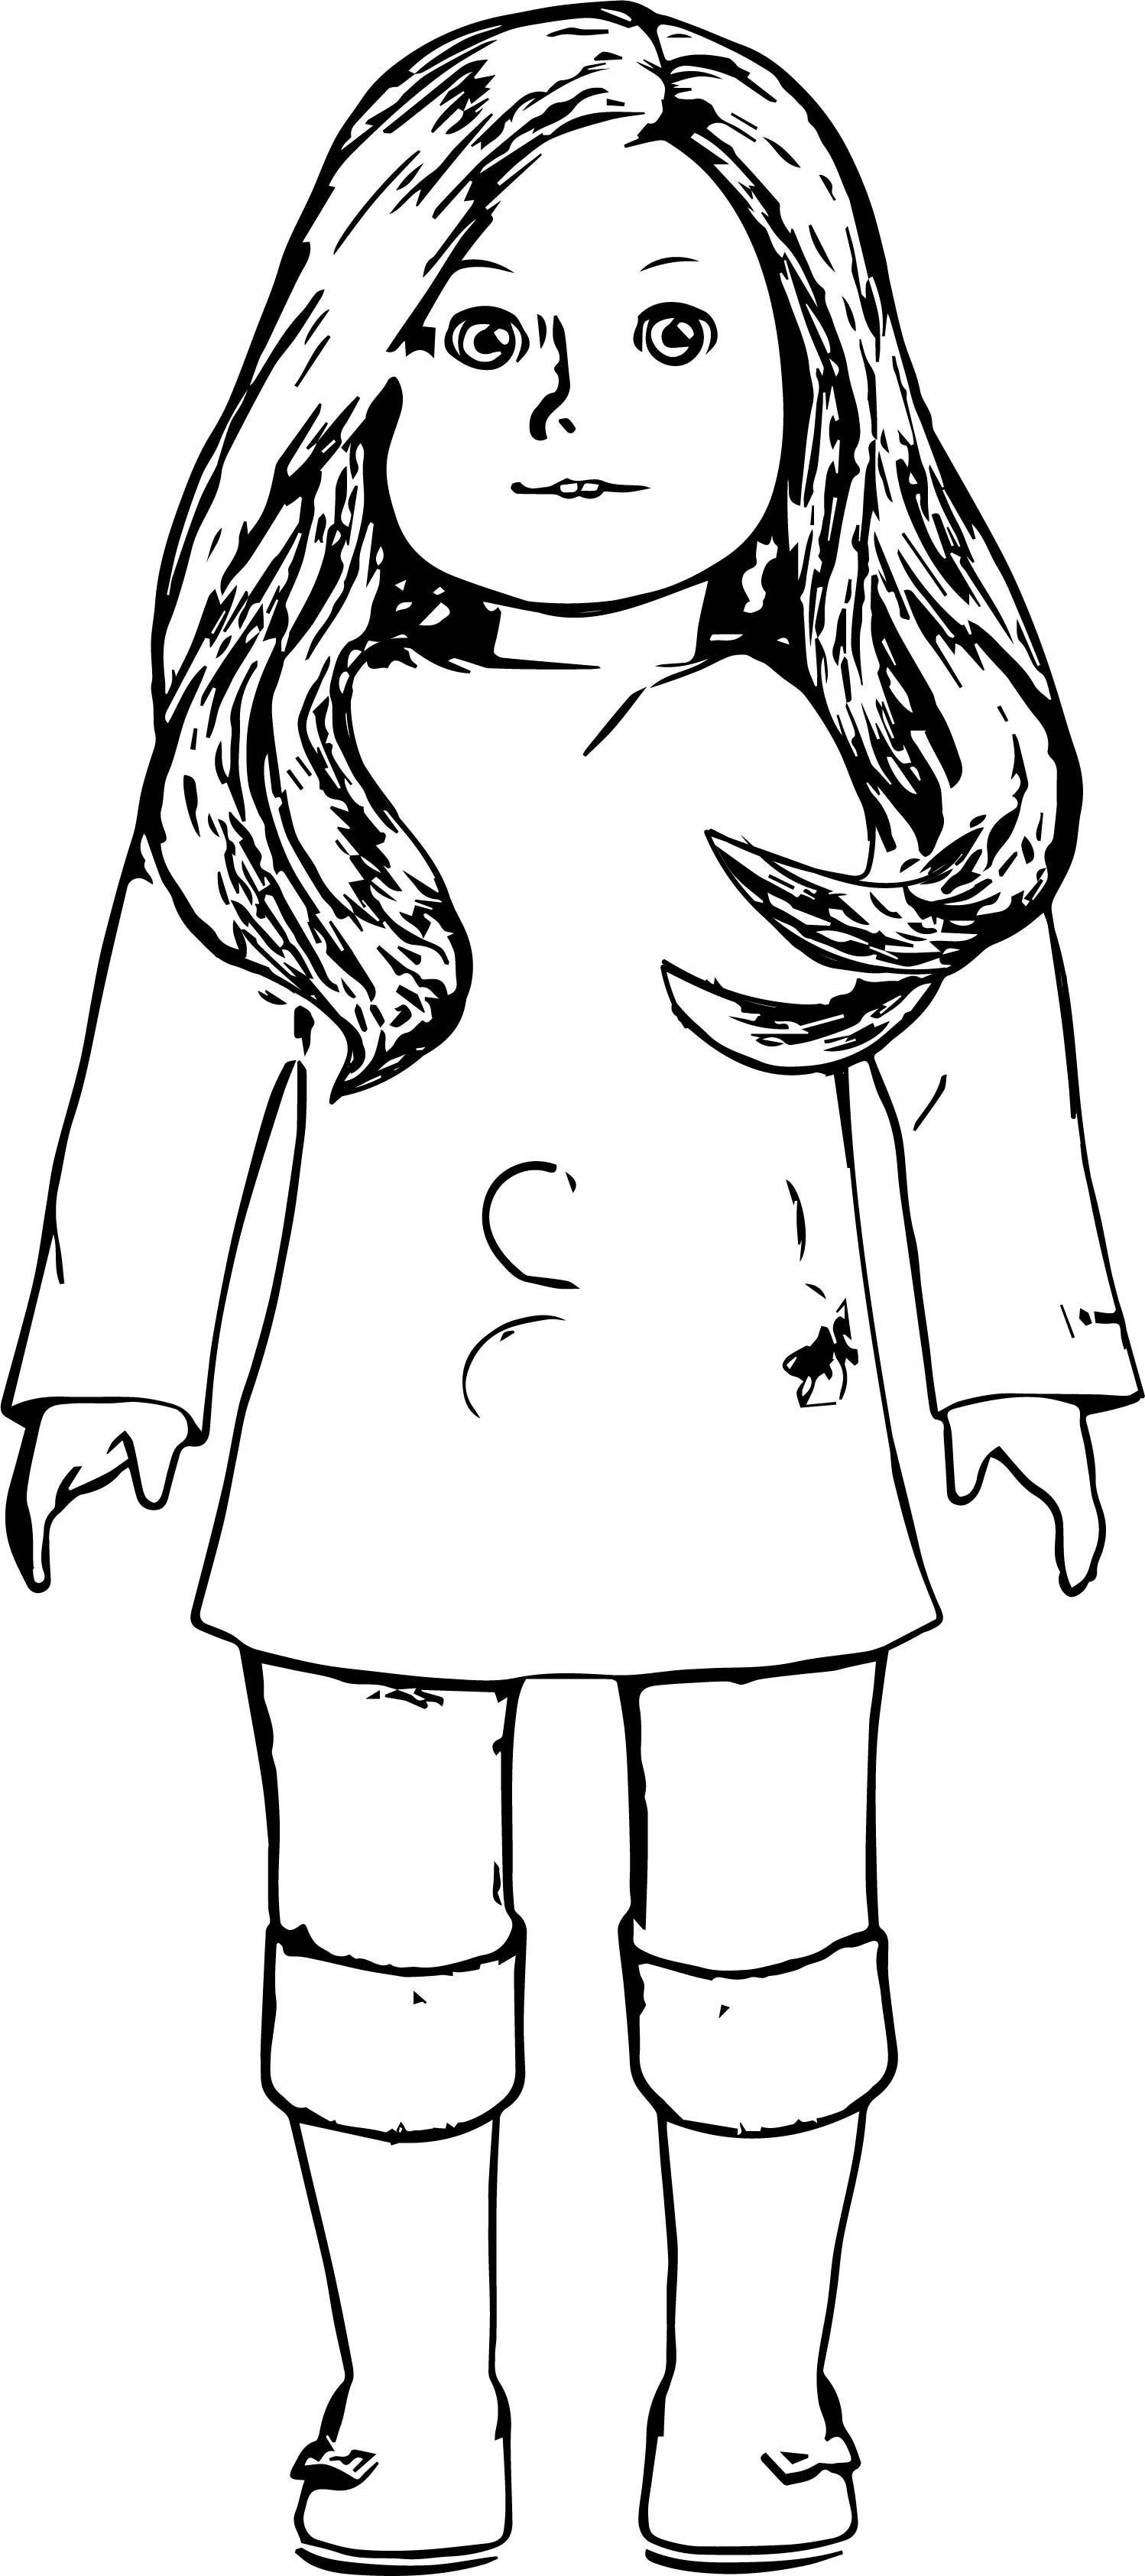 American Girl Lea Coloring Pages  American Girl Coloring Pages Best Coloring Pages For Kids